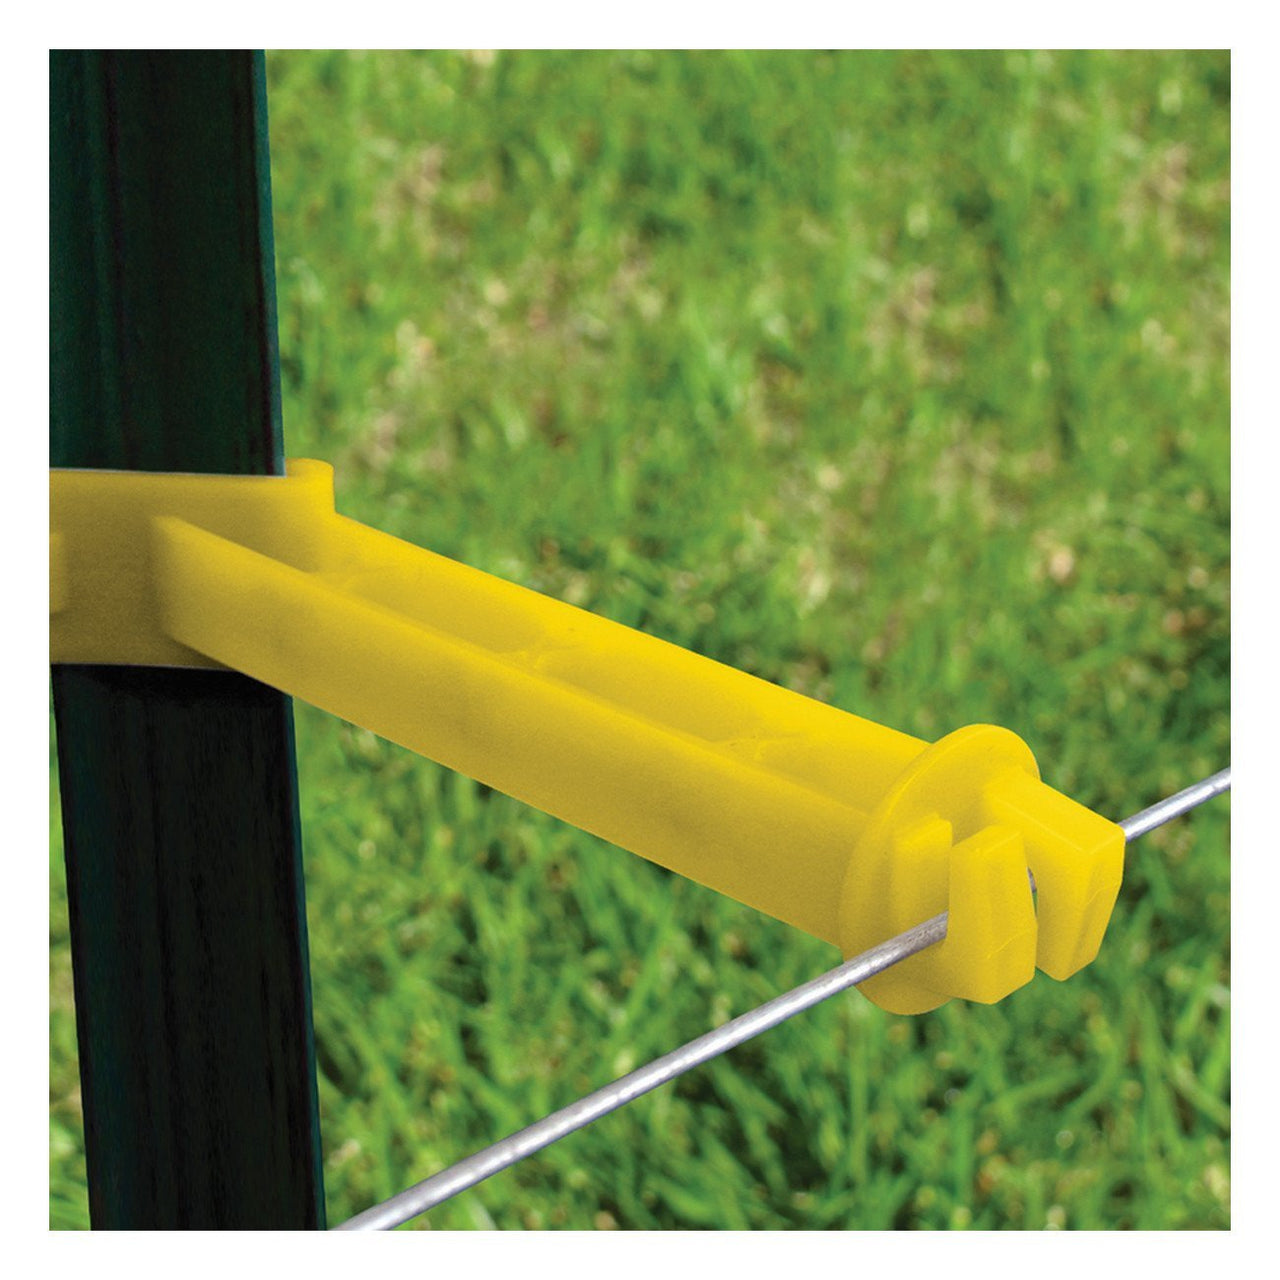 Patriot Backside T-Post Extender - 5 (Yellow) - Fencing Patriot - Canada